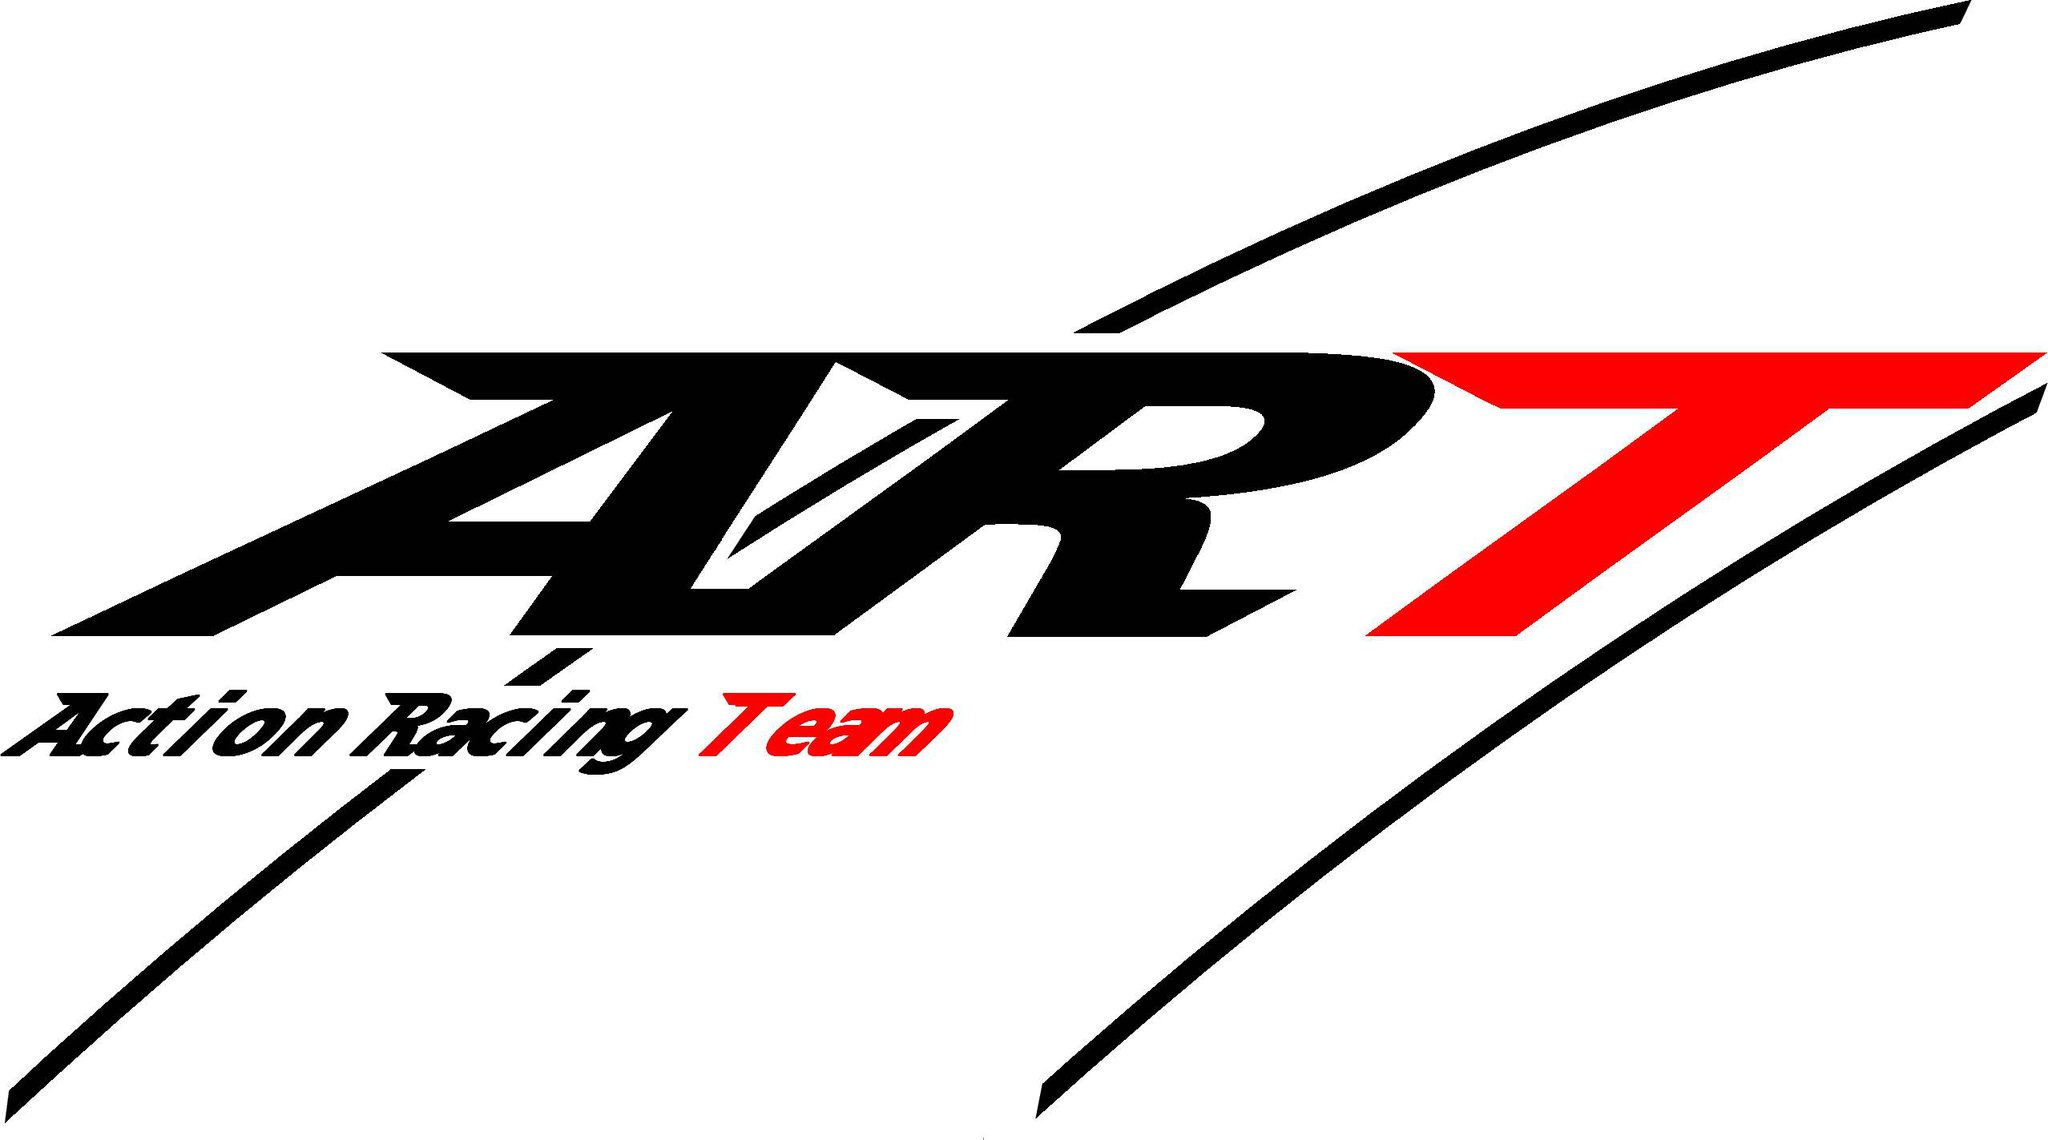 Action Racing Team